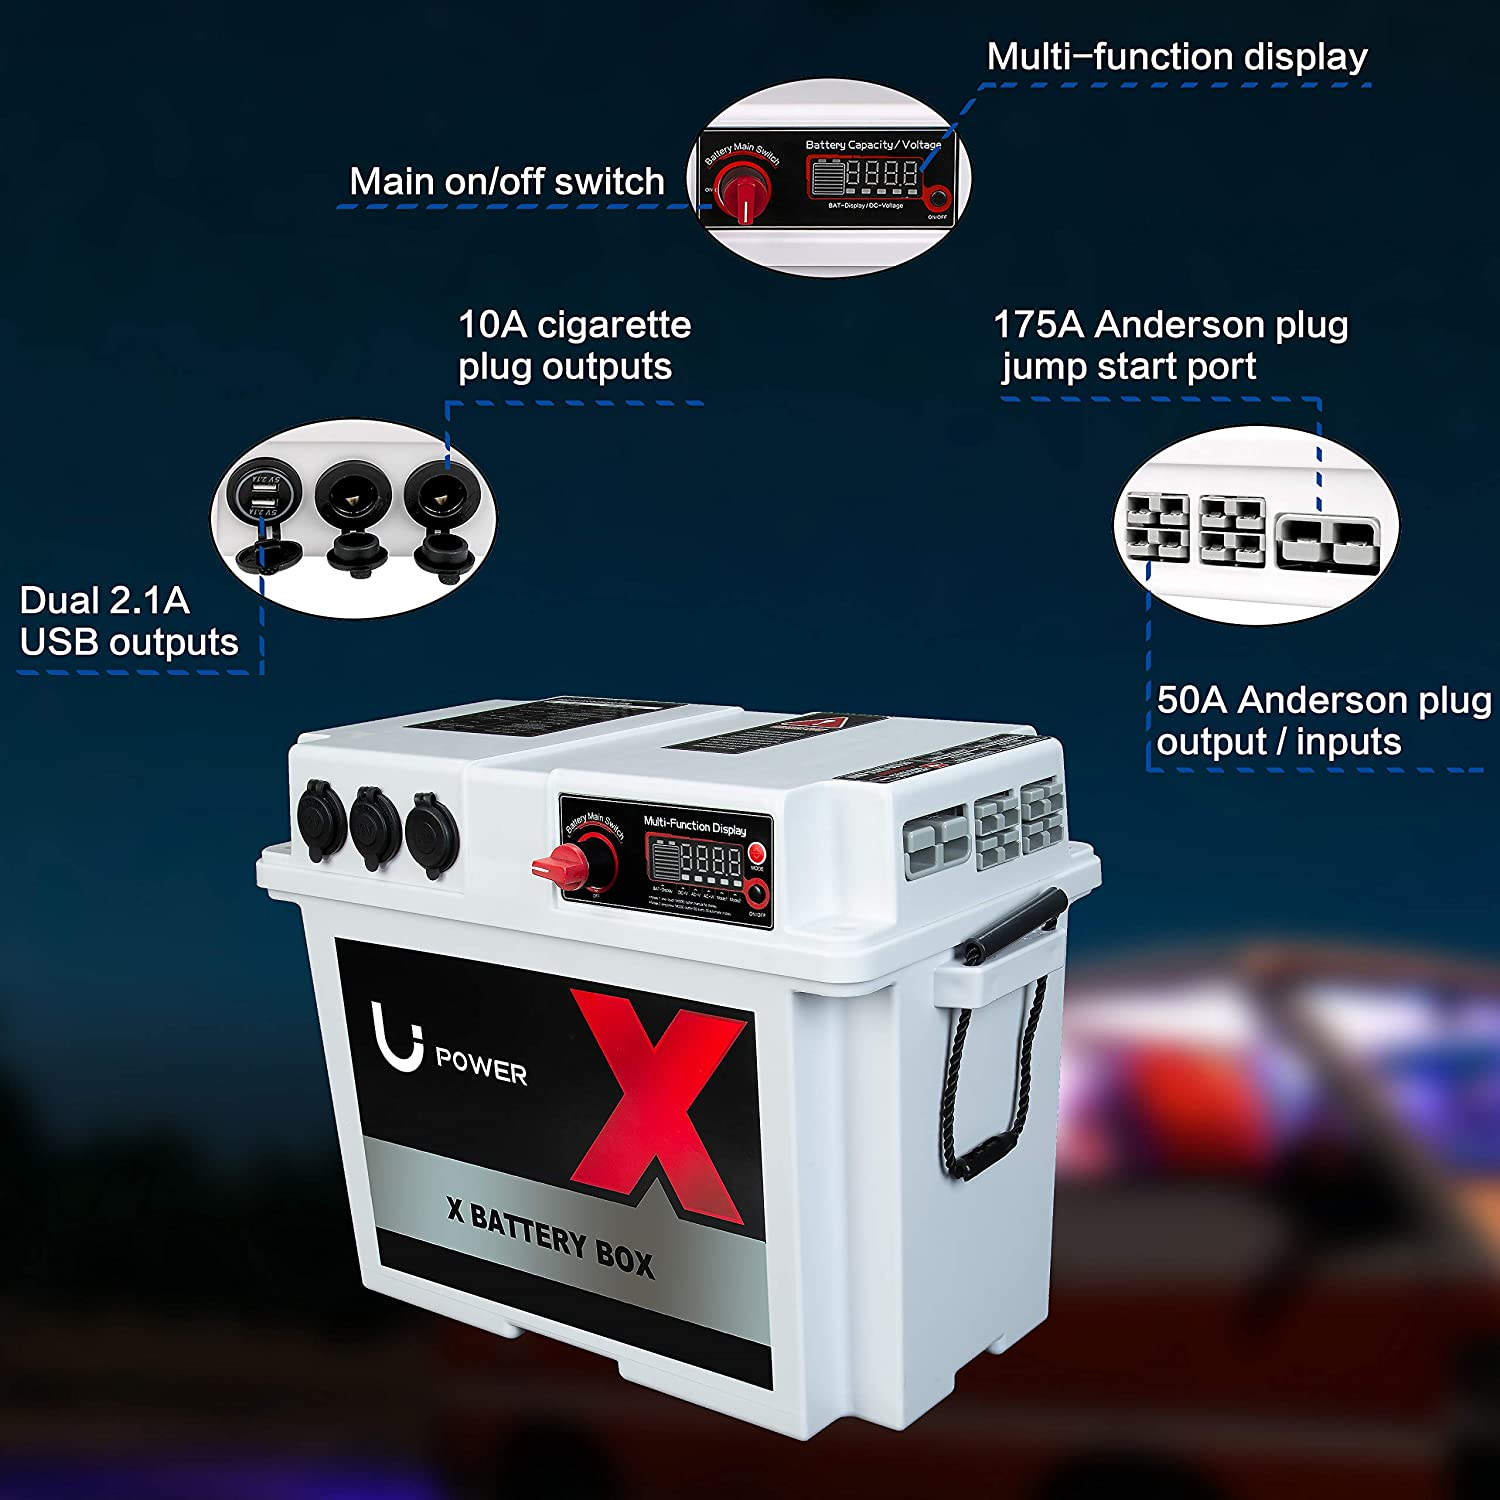 Li Power Multi-Function high-Capacity Heavy-Duty Battery Box Family emergen Fishing Hunting Outdoor Portable Solar Generator USB Anderson Plug Interface Outdoor Camping Power Without Battery